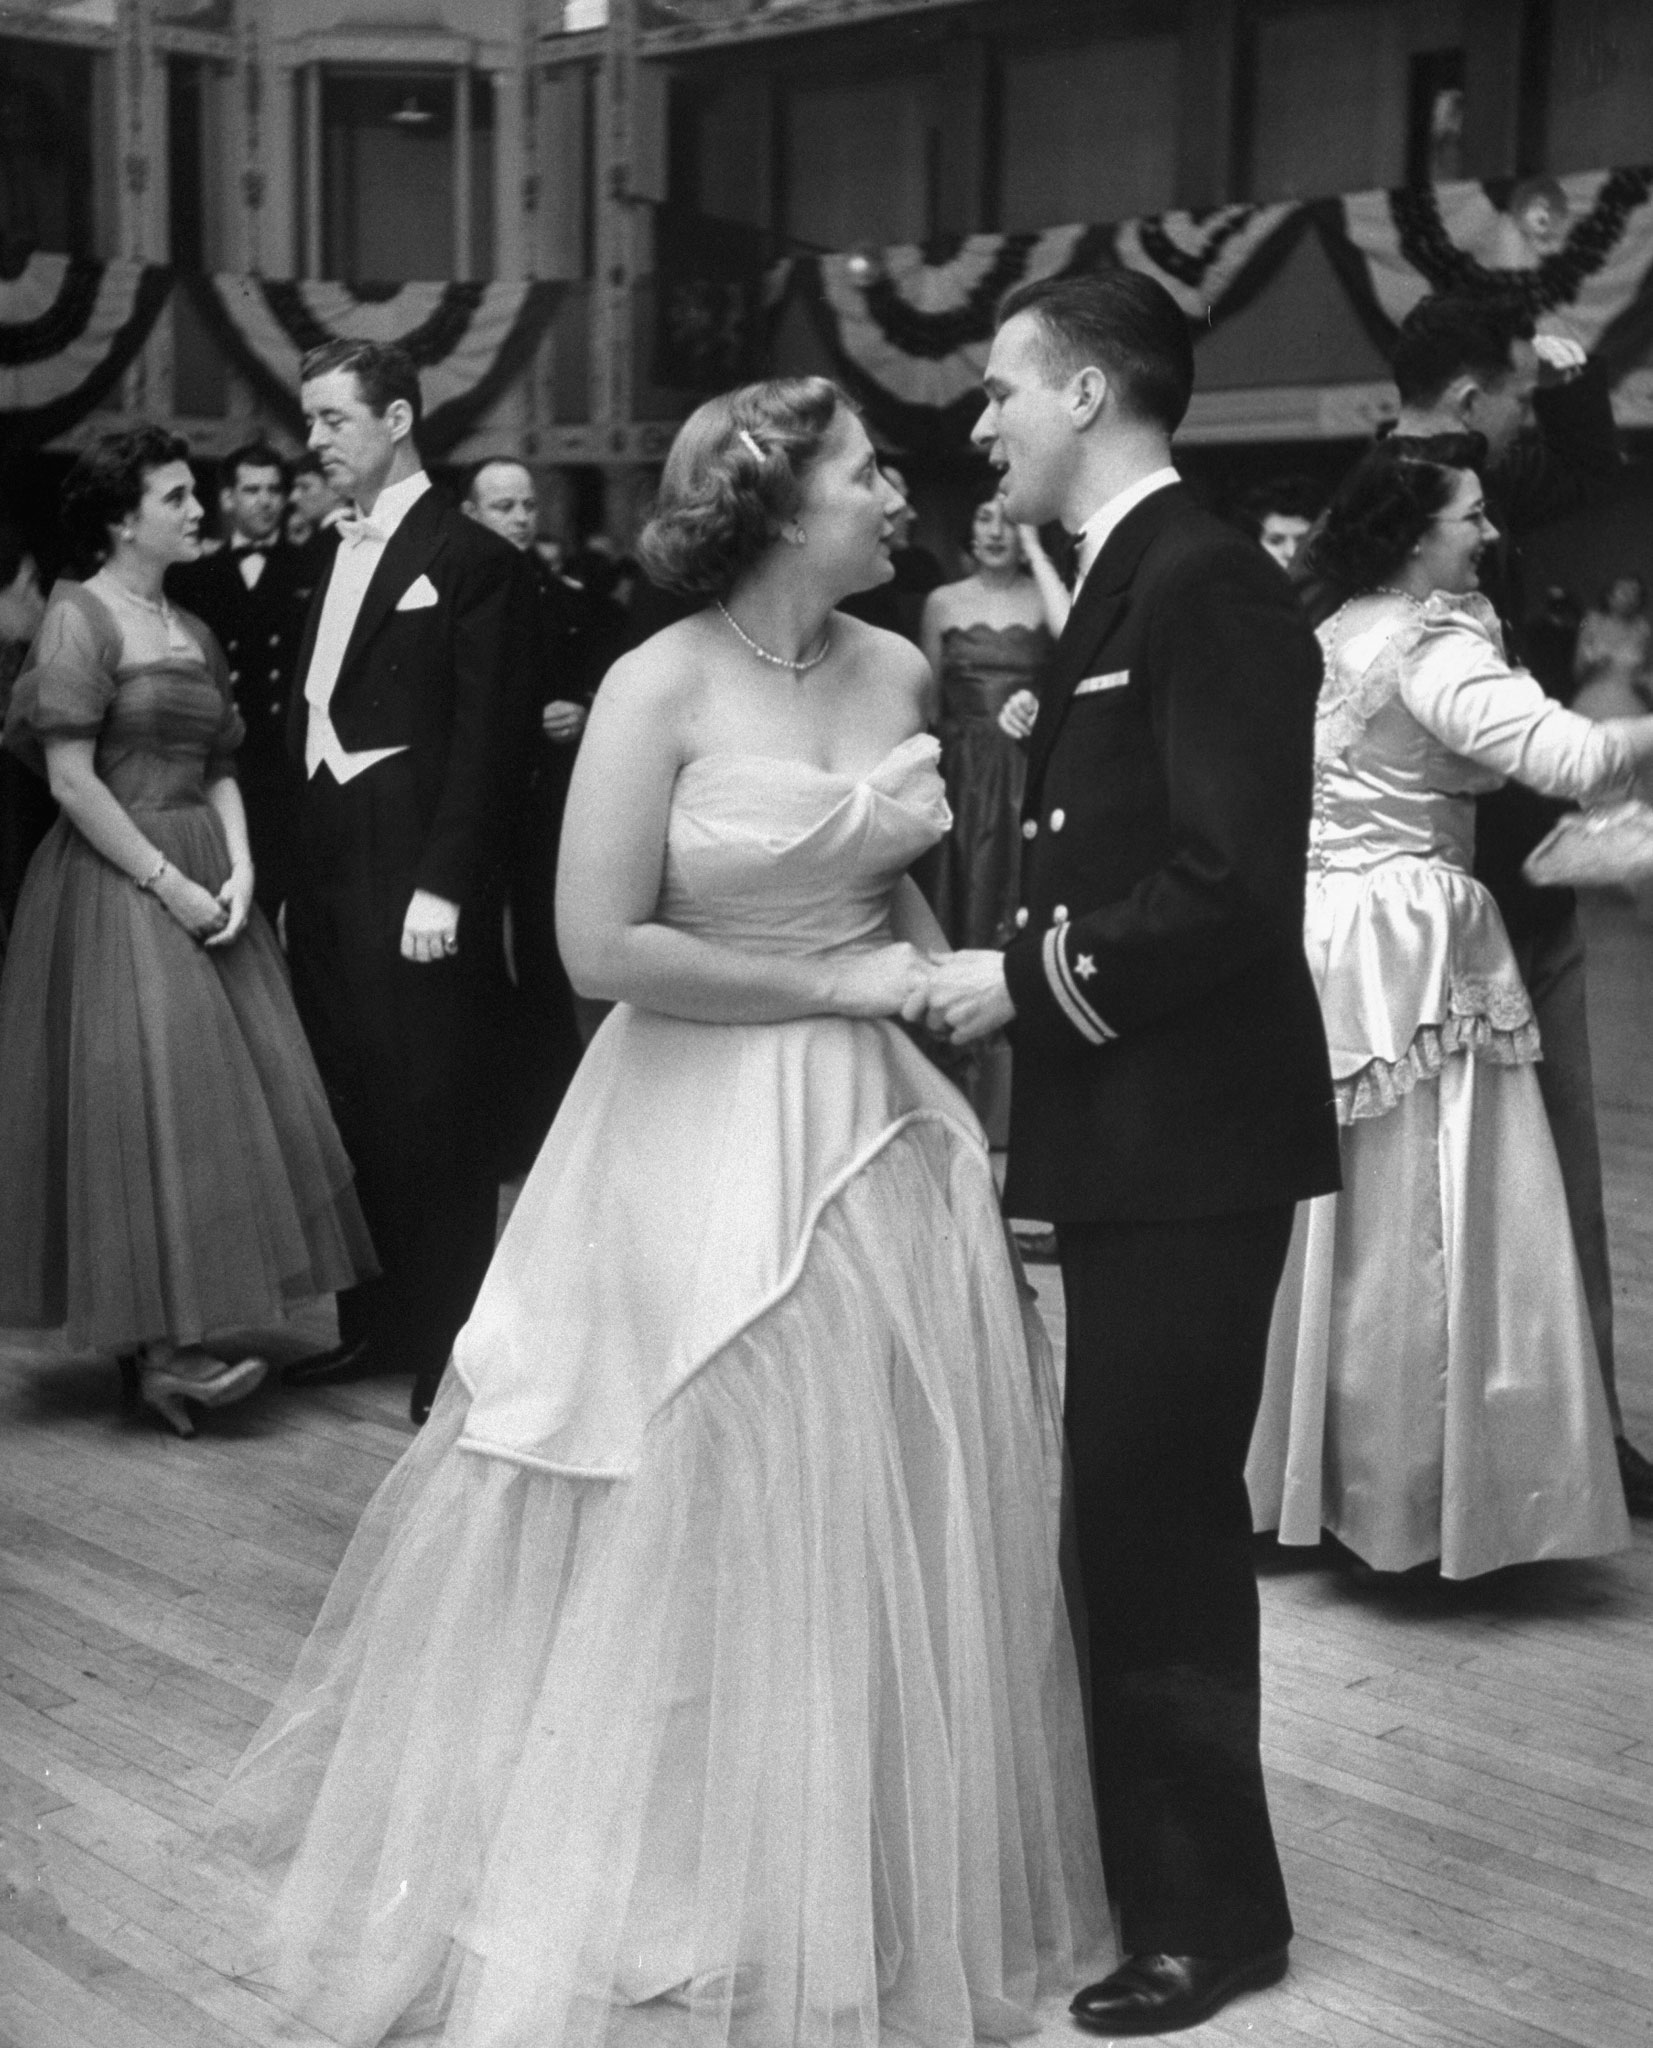 <b>Caption from LIFE.</b>Now down to 155 pounds, an attractive Dorothy dances at Navy Ball.